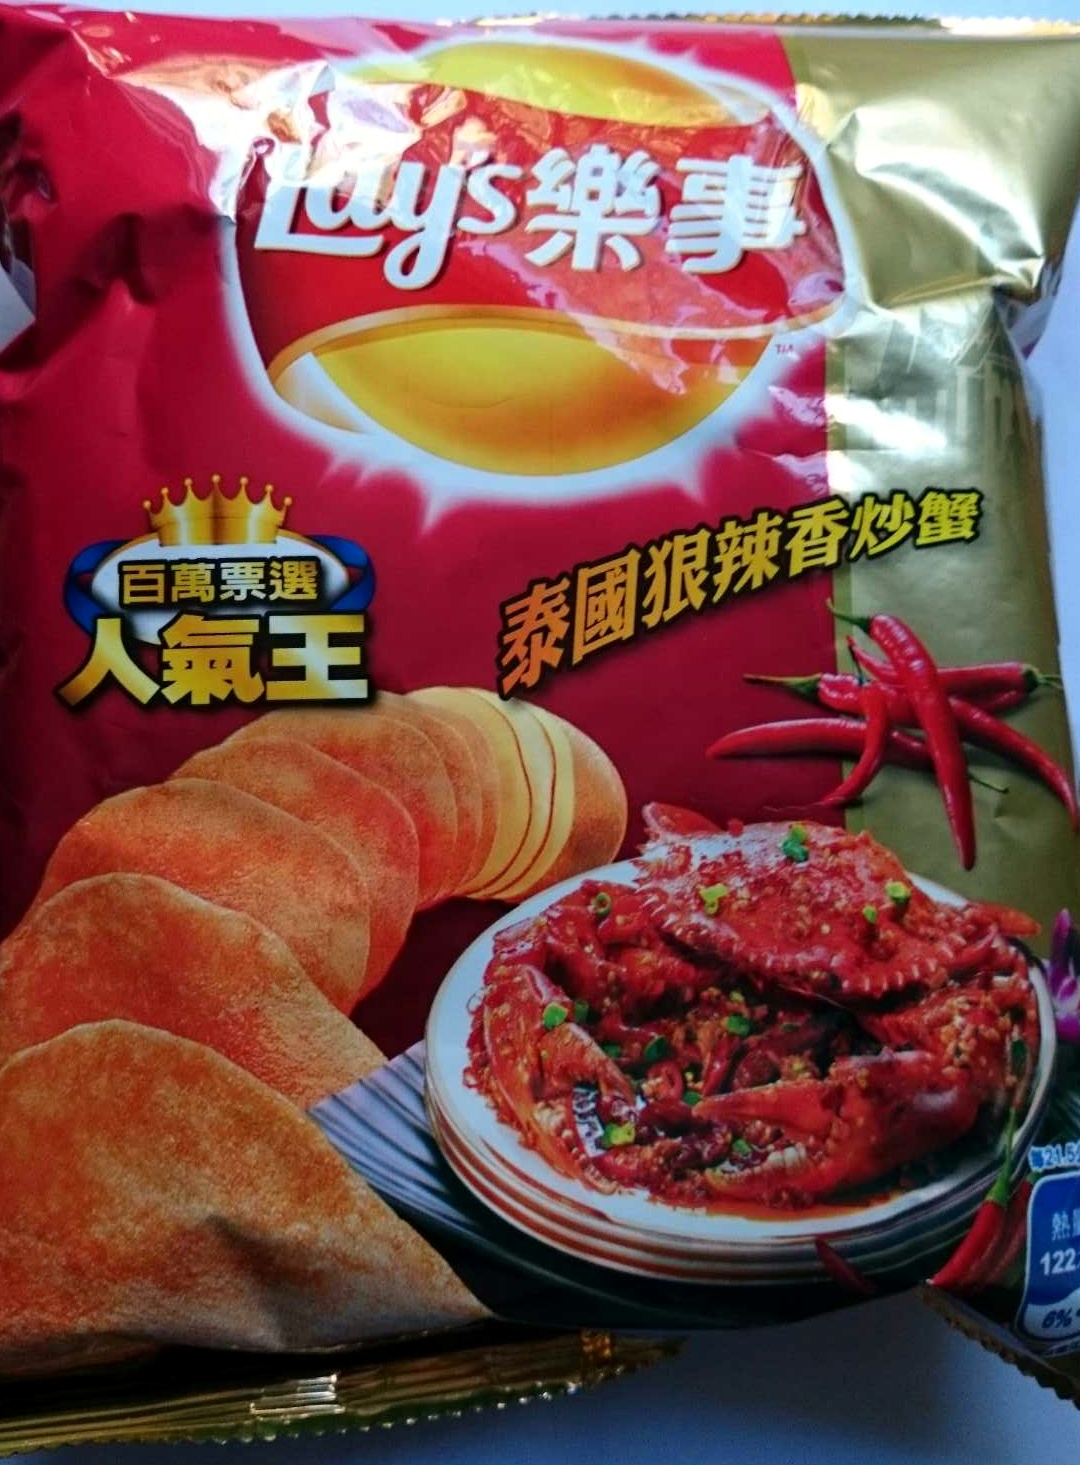 Thai Style Stir Fried Crab with Hot Spices Potato Chips - Product - en